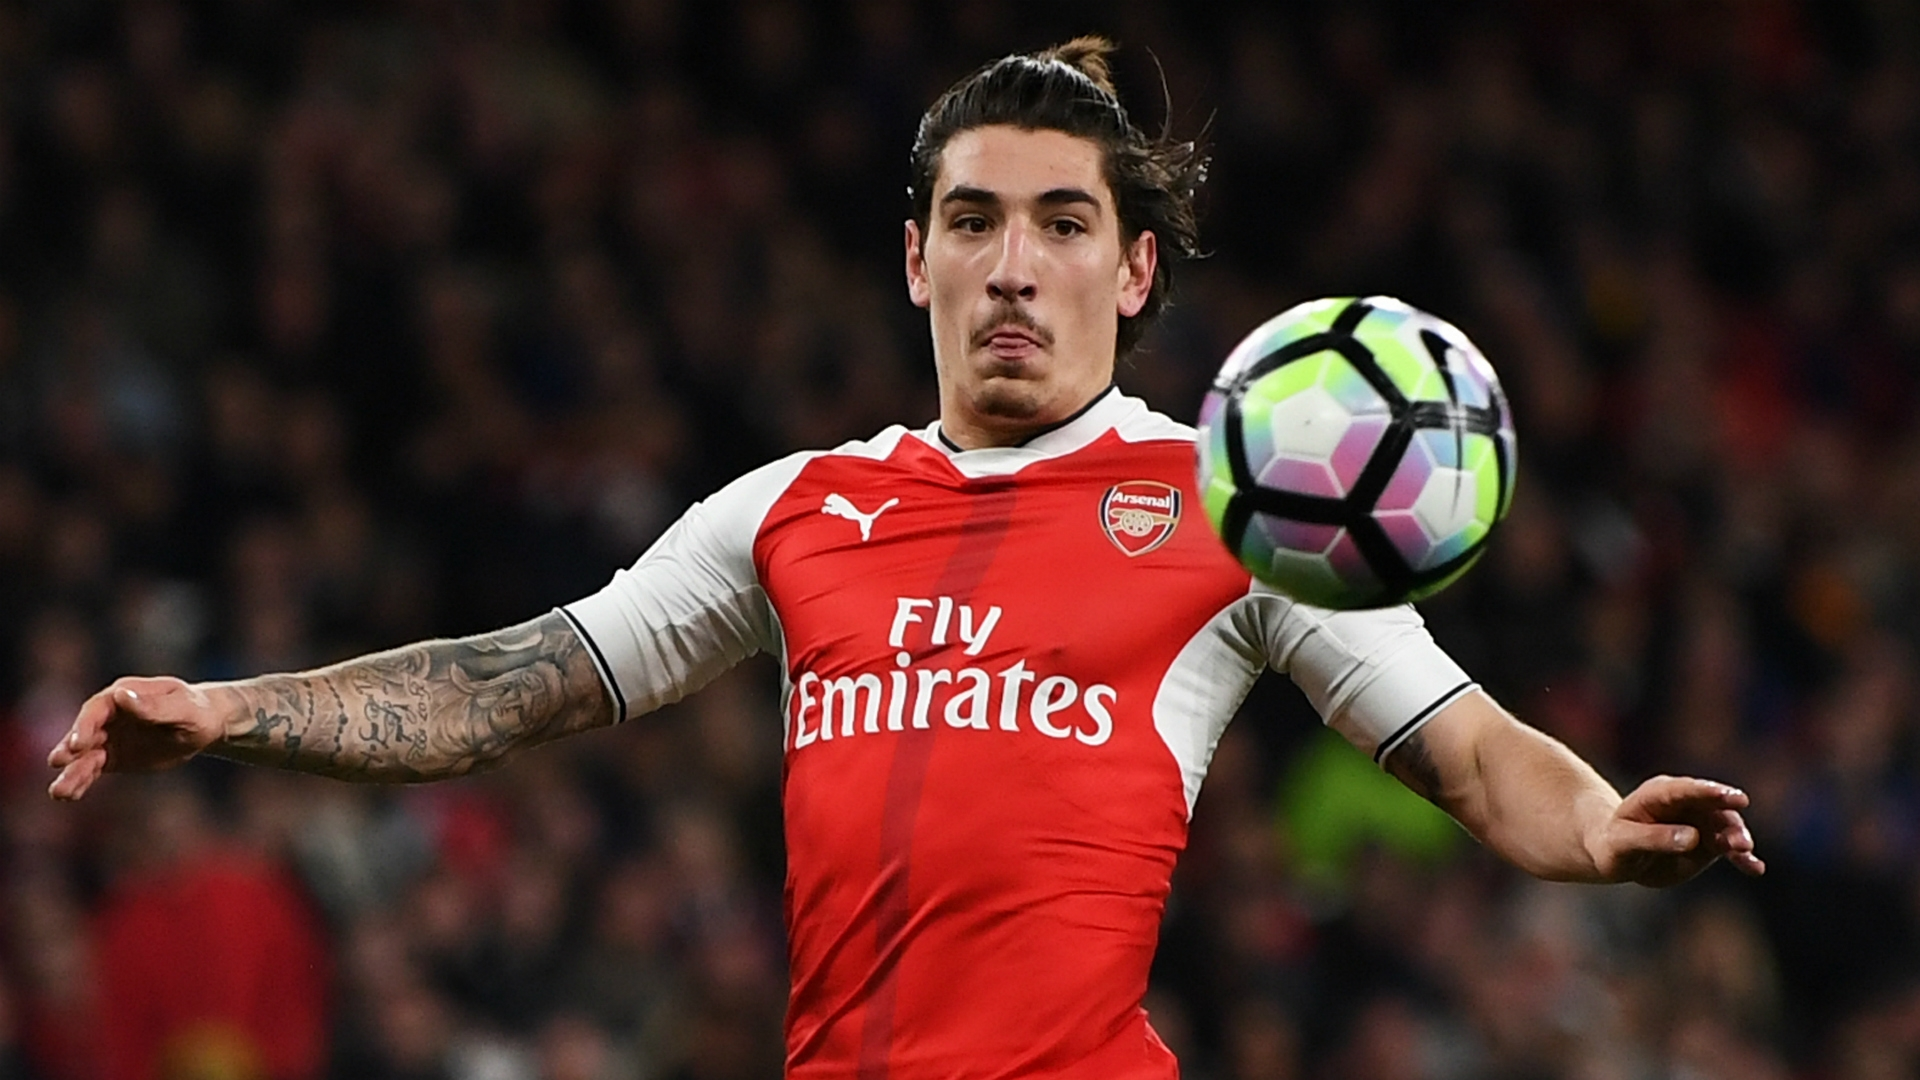 Bellerin started his career playing for Barcelona youth team